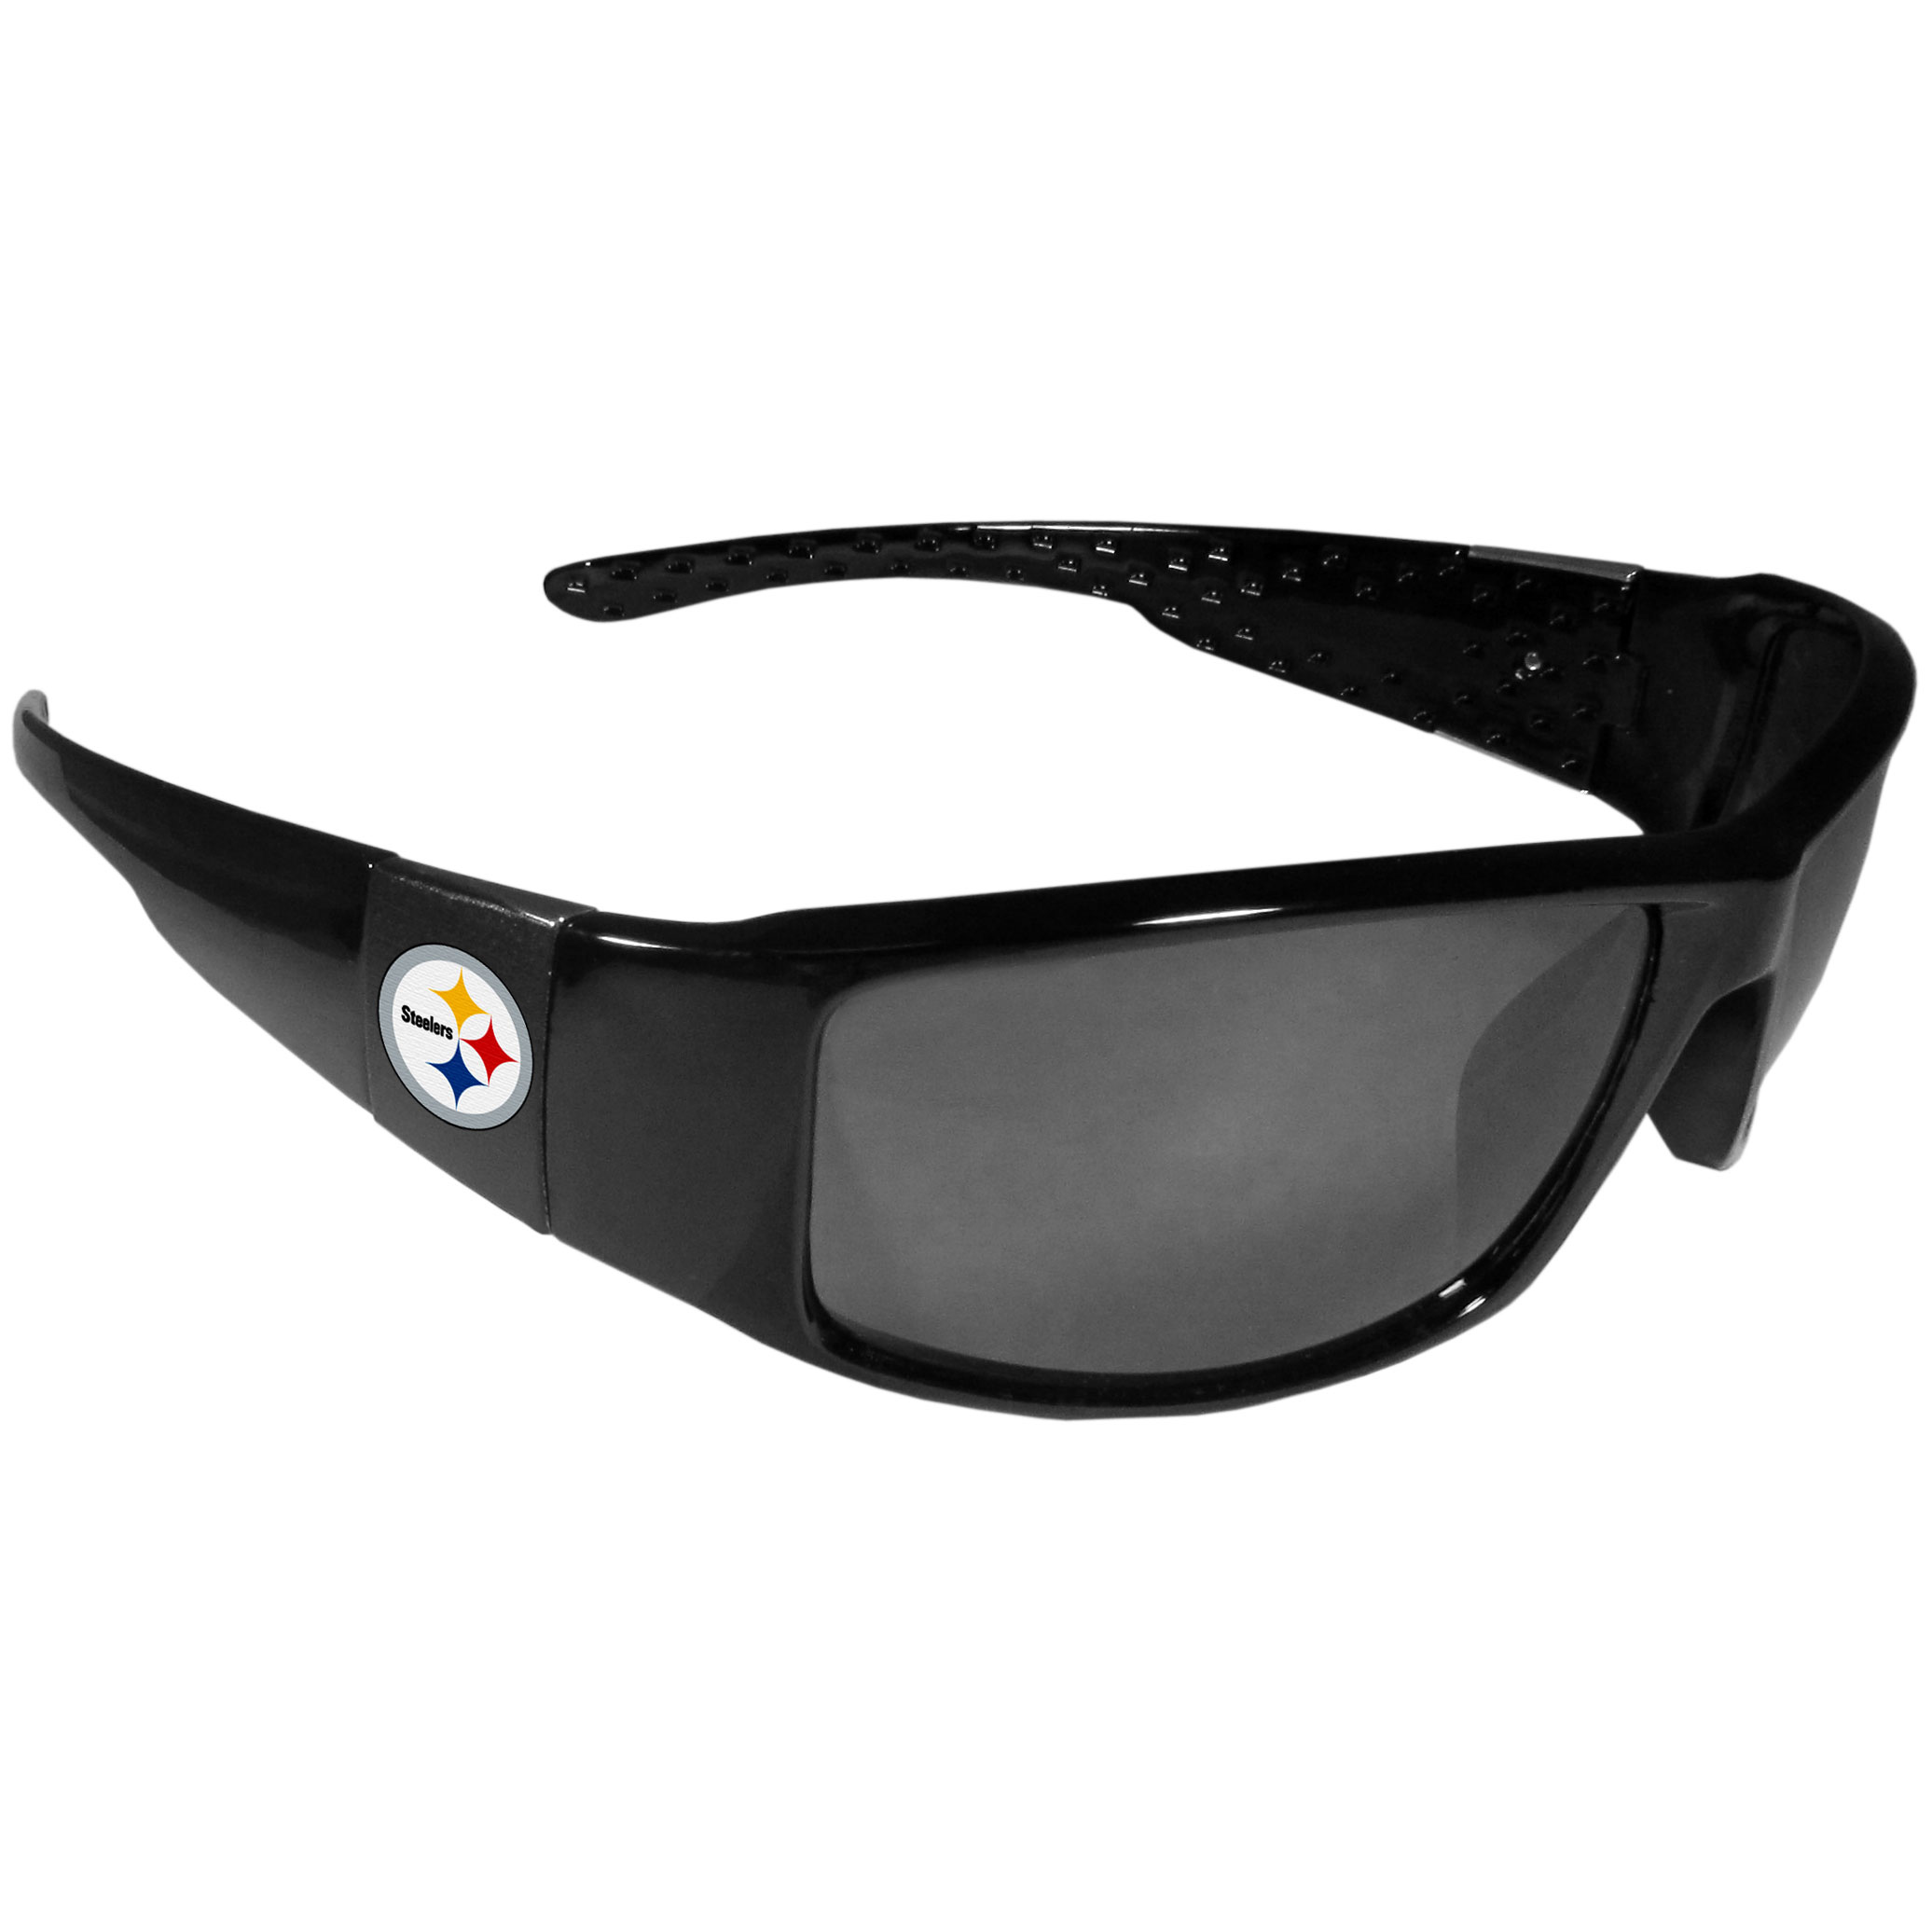 Pittsburgh Steelers Black Wrap Sunglasses - These designer inspired frames have a sleek look in all black with  Pittsburgh Steelers shields on each arm with a printed logo. The shades are perfect for any outdoor activity like; golfing, driving, hiking, fishing or cheering on the team at a tailgating event or at a home game day BBQ with a lens rating of 100% UVA/UVB for maximum UV protection. The high-quality frames are as durable as they are fashionable and with their classic look they are the perfect fan accessory that can be worn everyday for every occasion.